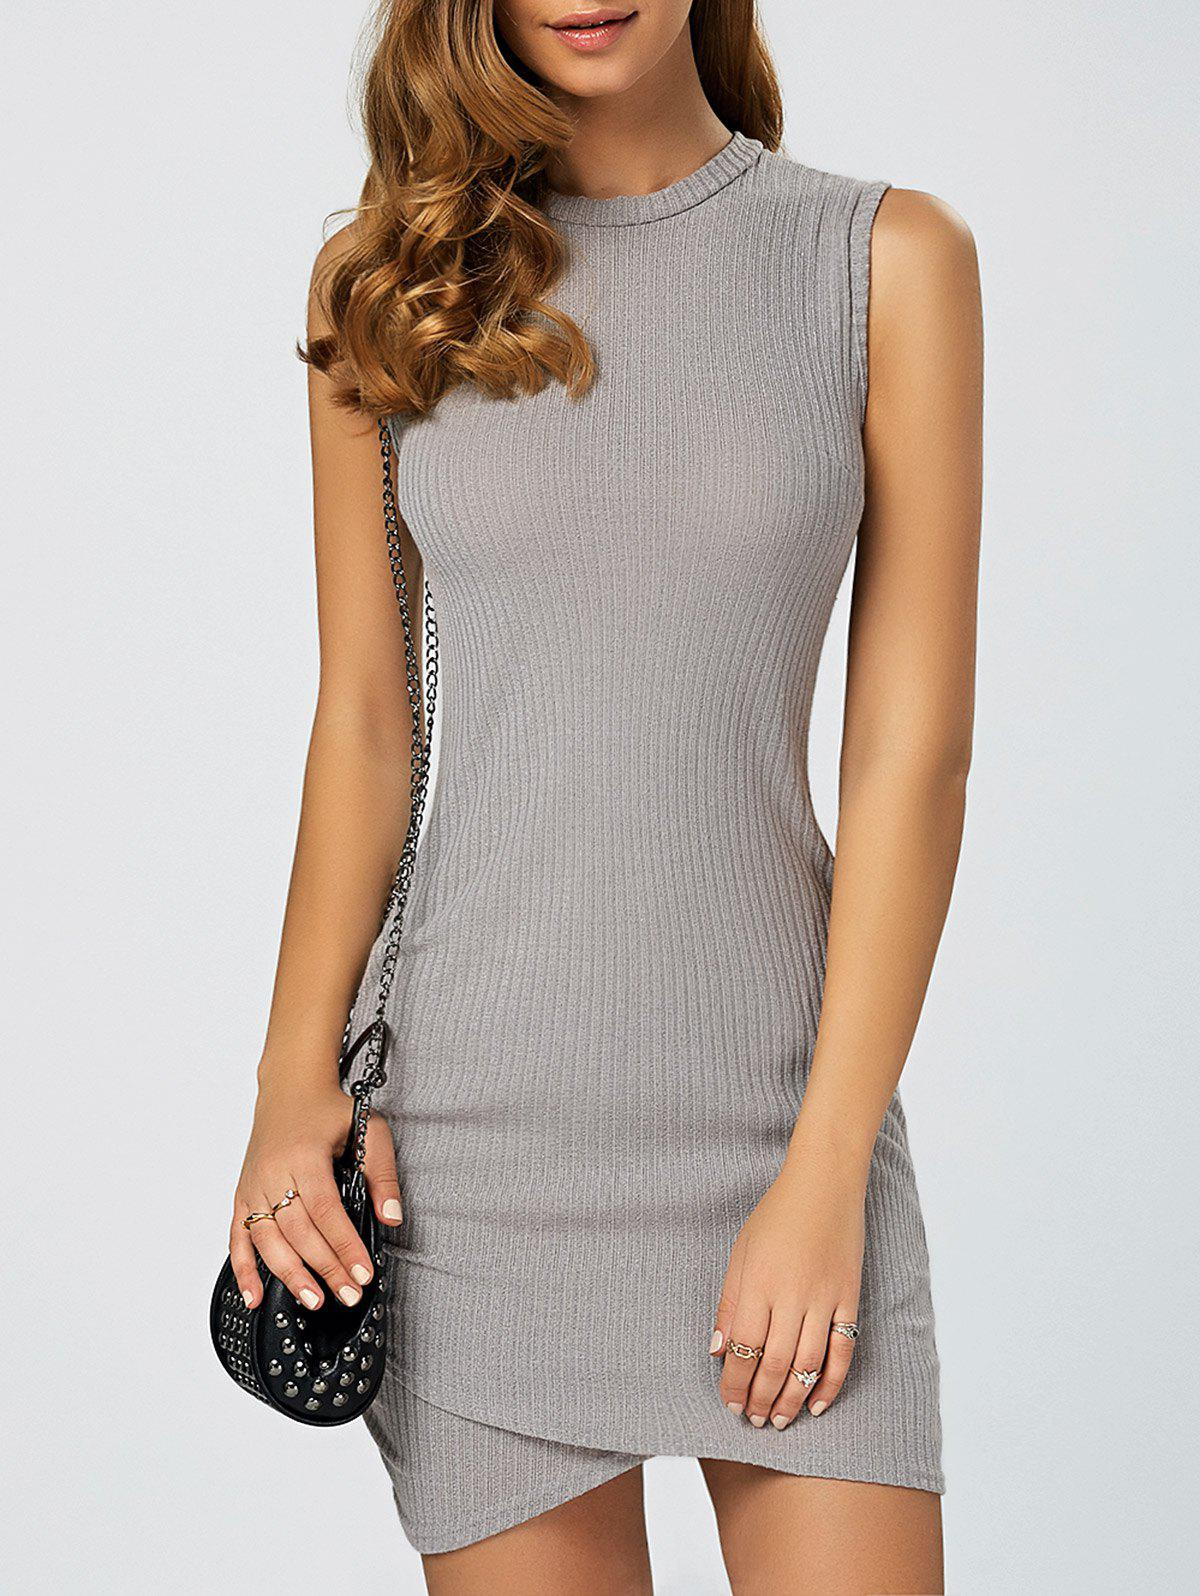 Asymmetric Knitted Sleeveless Jumper Bandage Dress - GRAY S